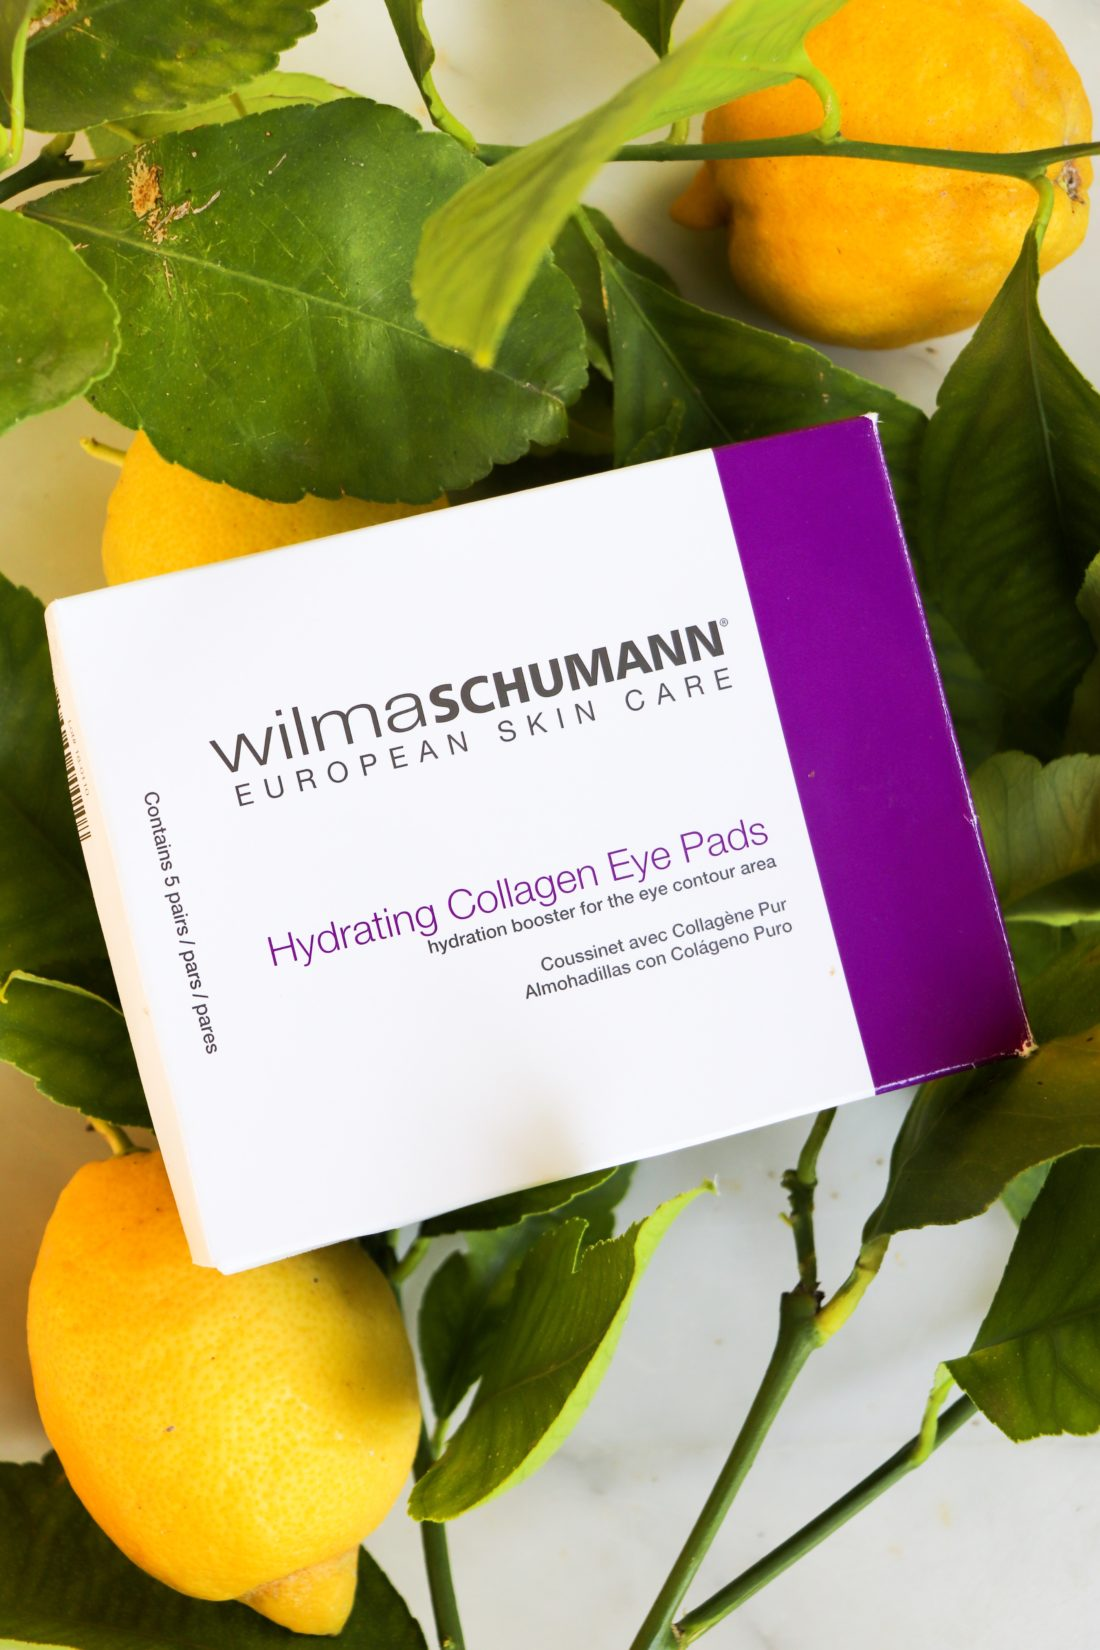 Eva Amurri Martino shares her July obsessions, including Wilma Schumann Hydrating Collagen Eye Pads